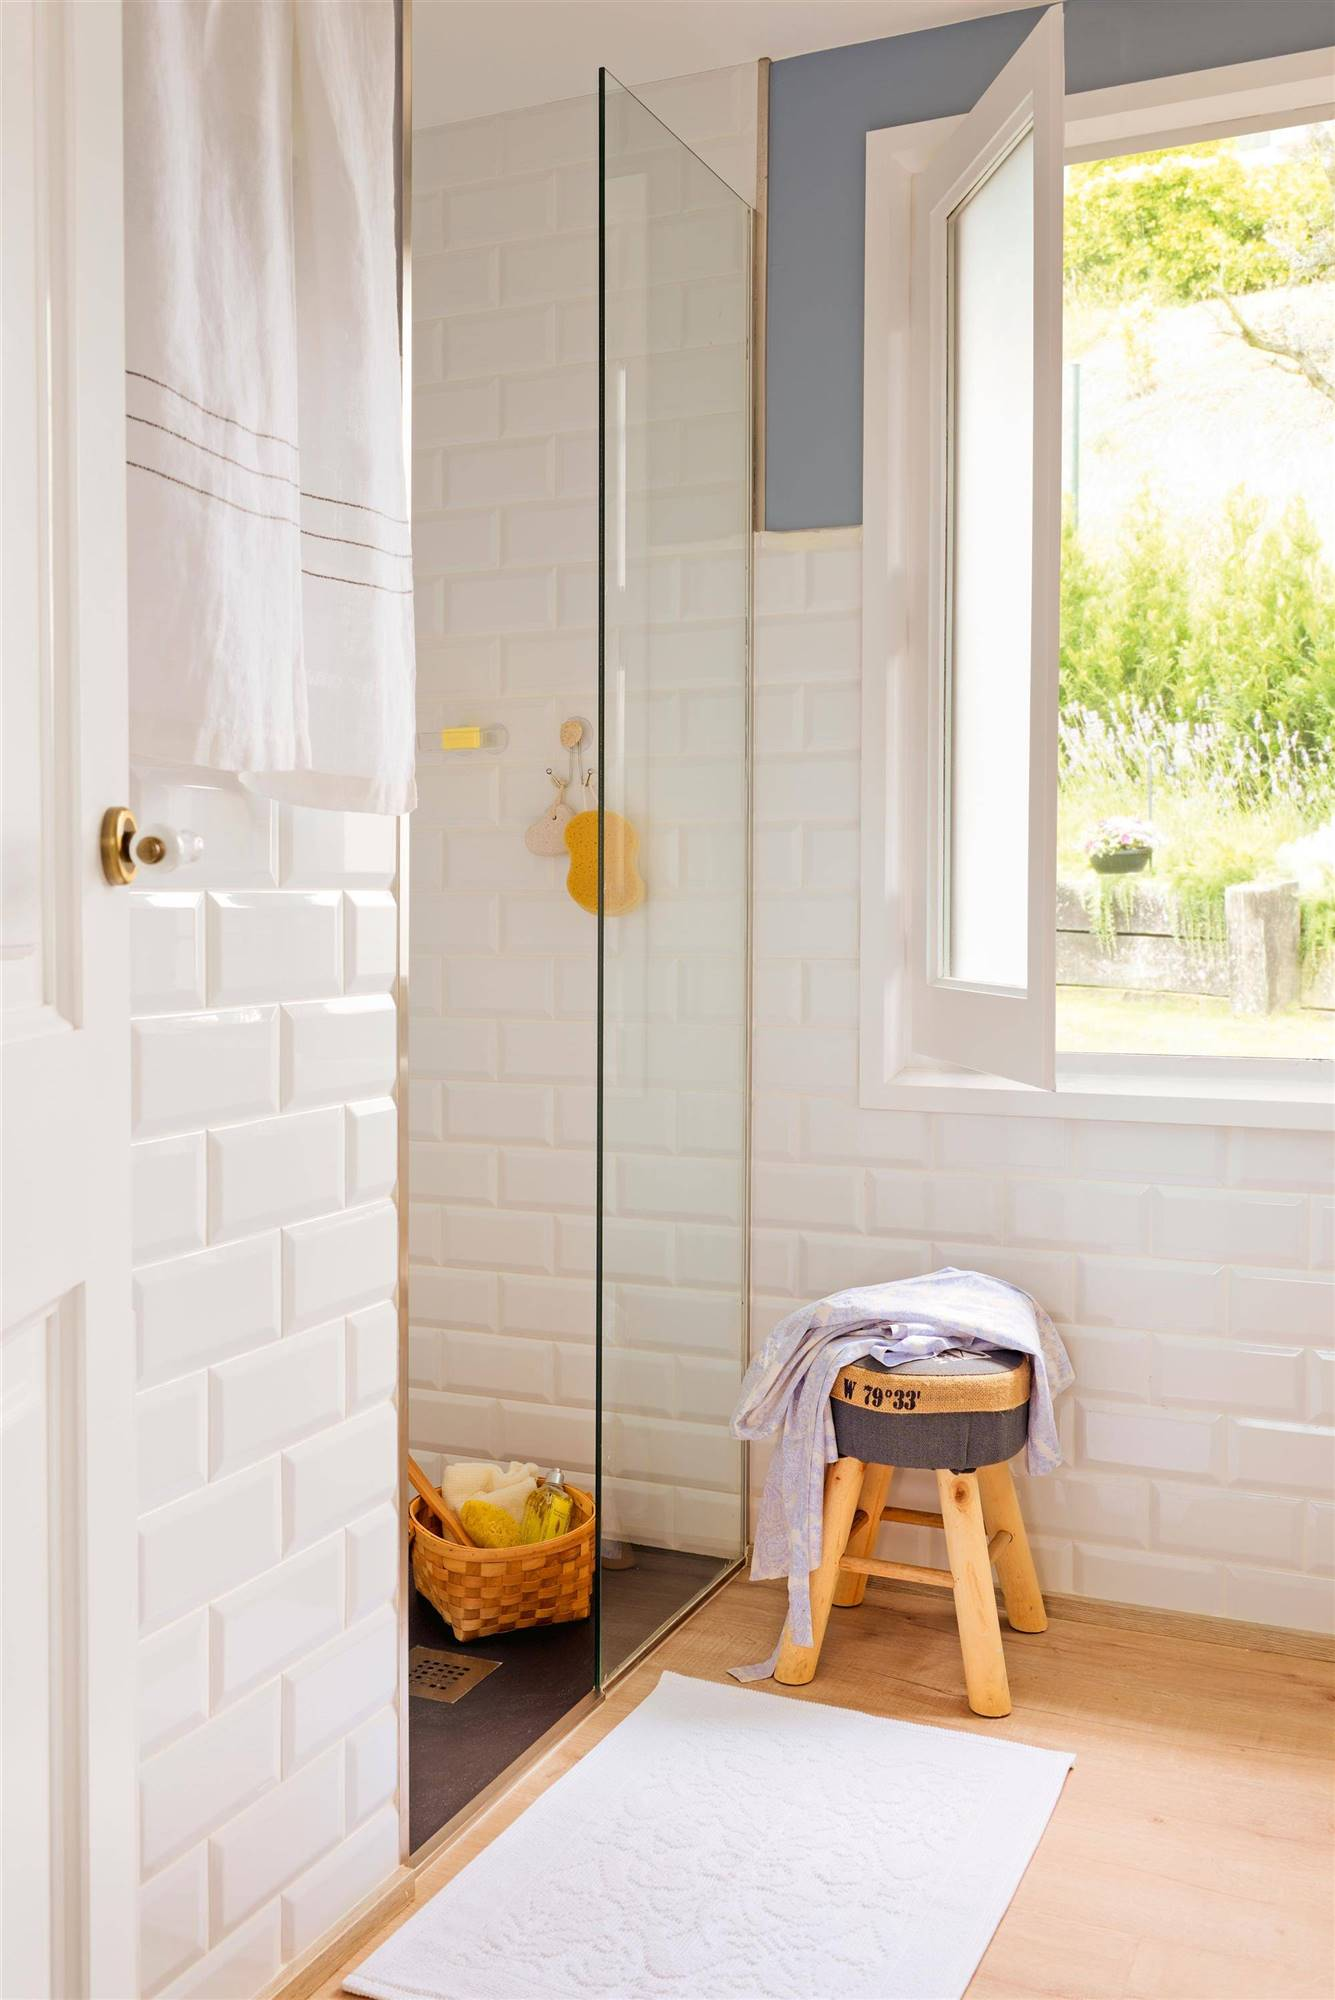 00426633. You can use the steam cleaner to clean the tile joints